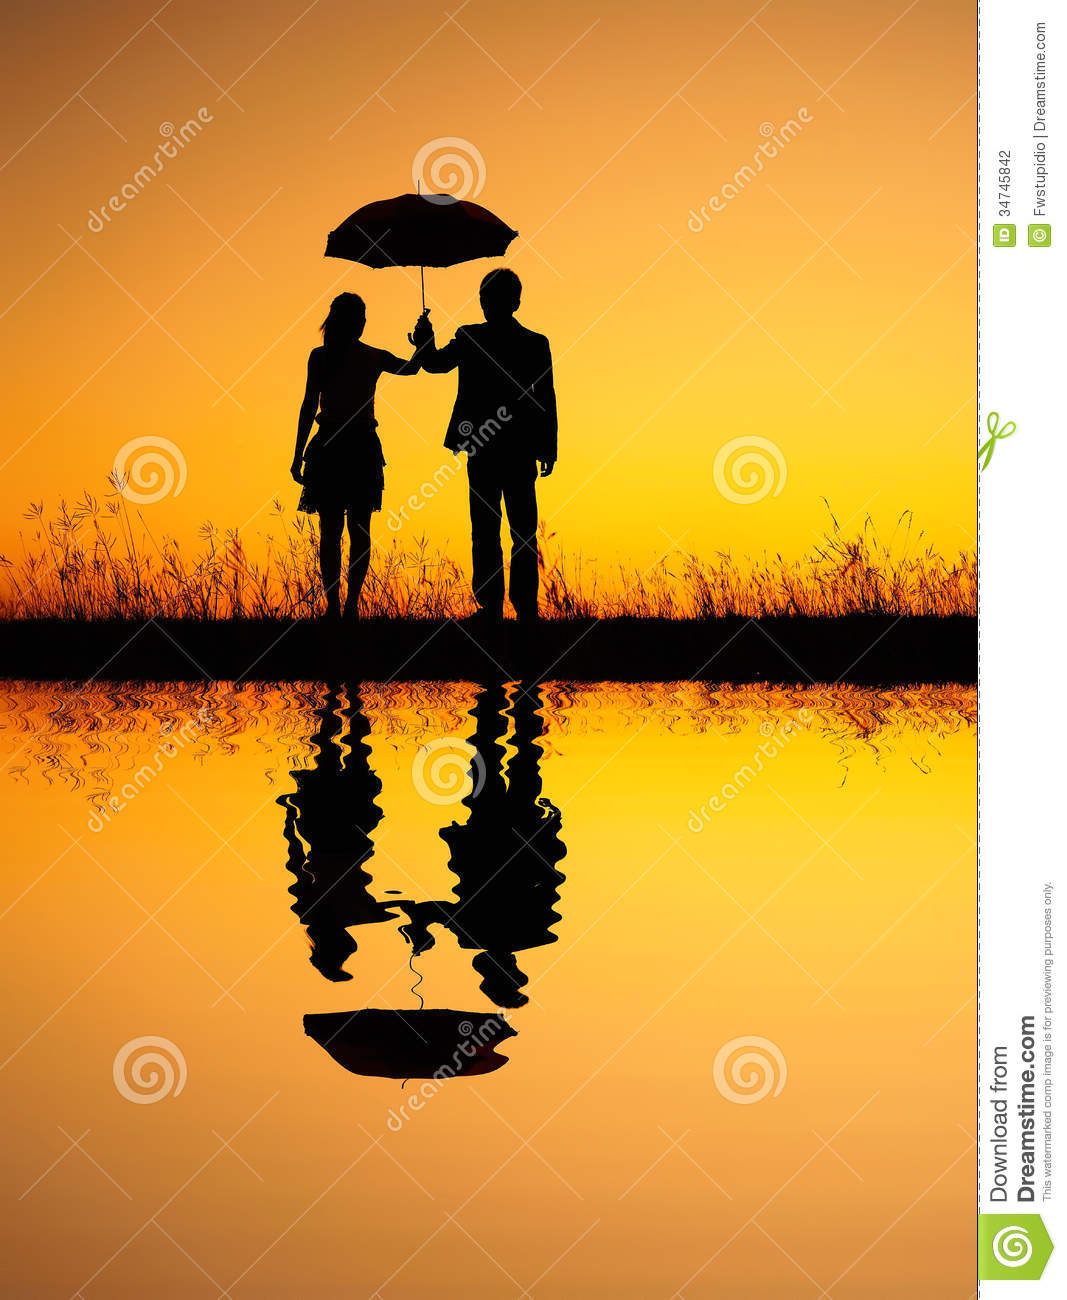 Stock Photos Pictures and RoyaltyFree Images  iStock